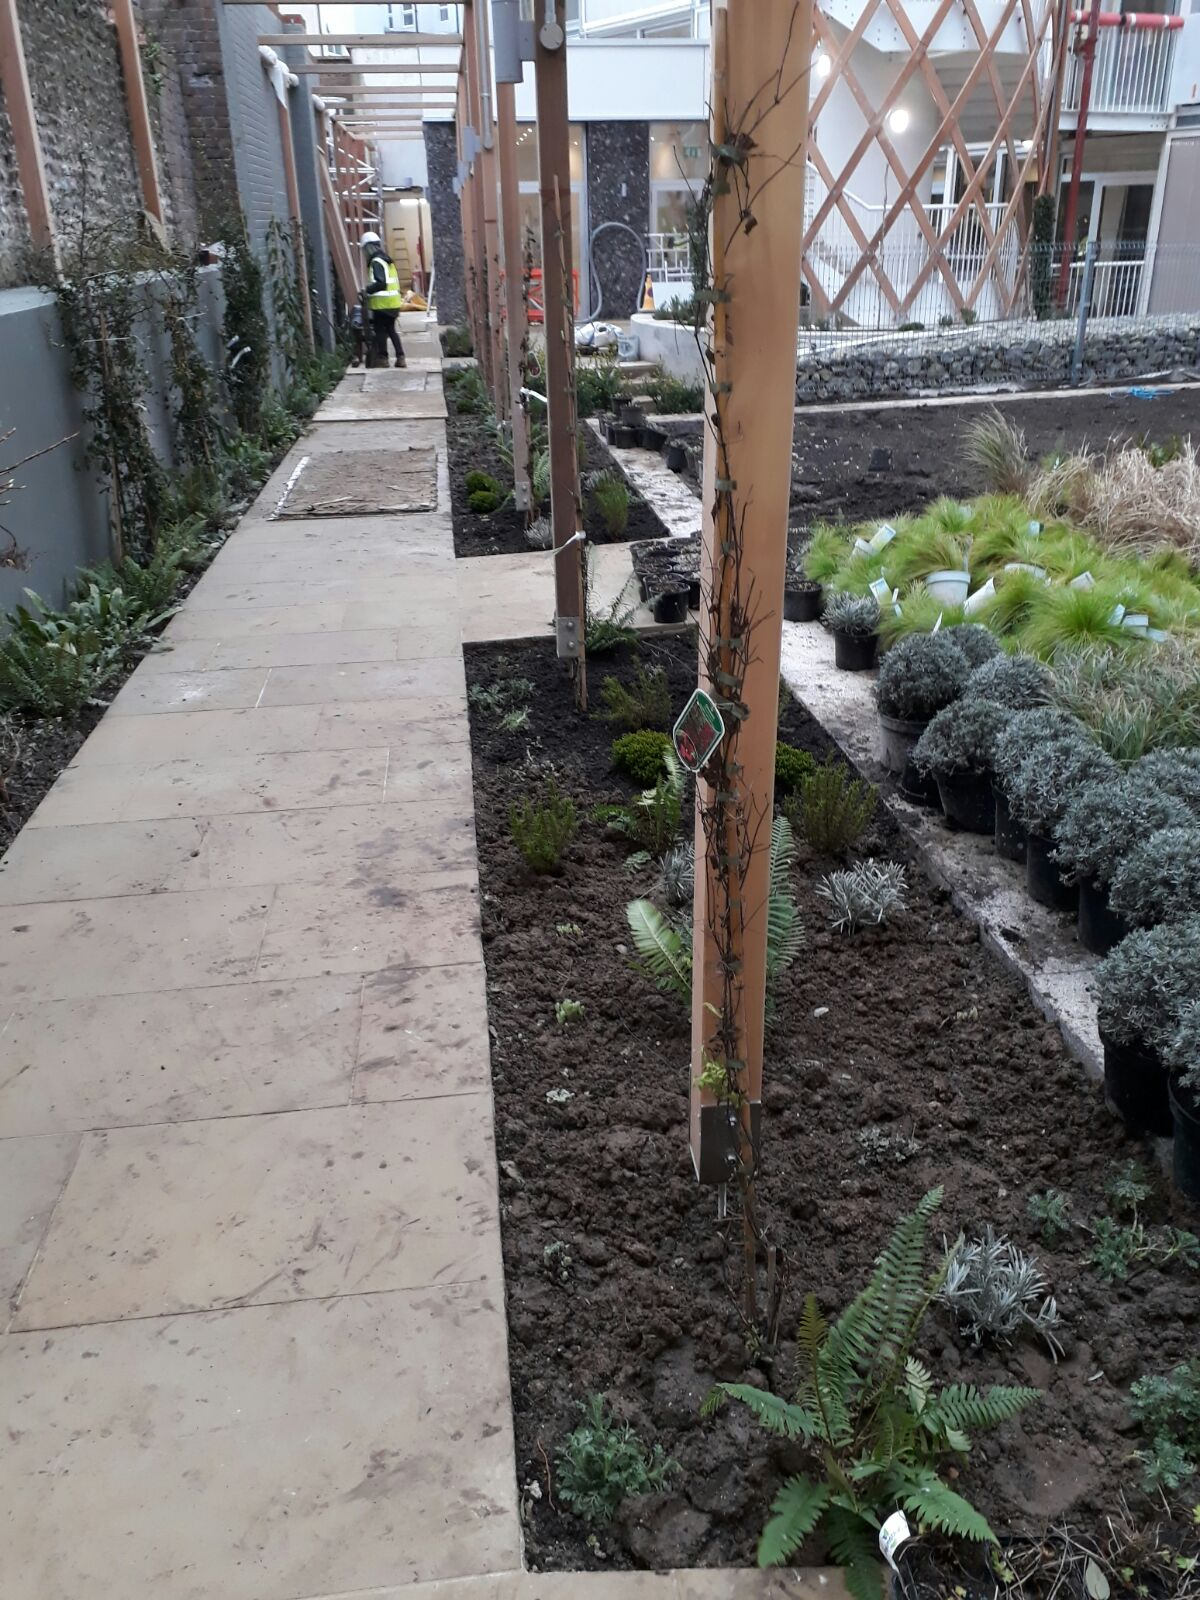 Exciting times at #Hortsley, Seaford! Our planting currently being set out by @AcreLandscapes, and the pond is fill… twitter.com/i/web/status/9…